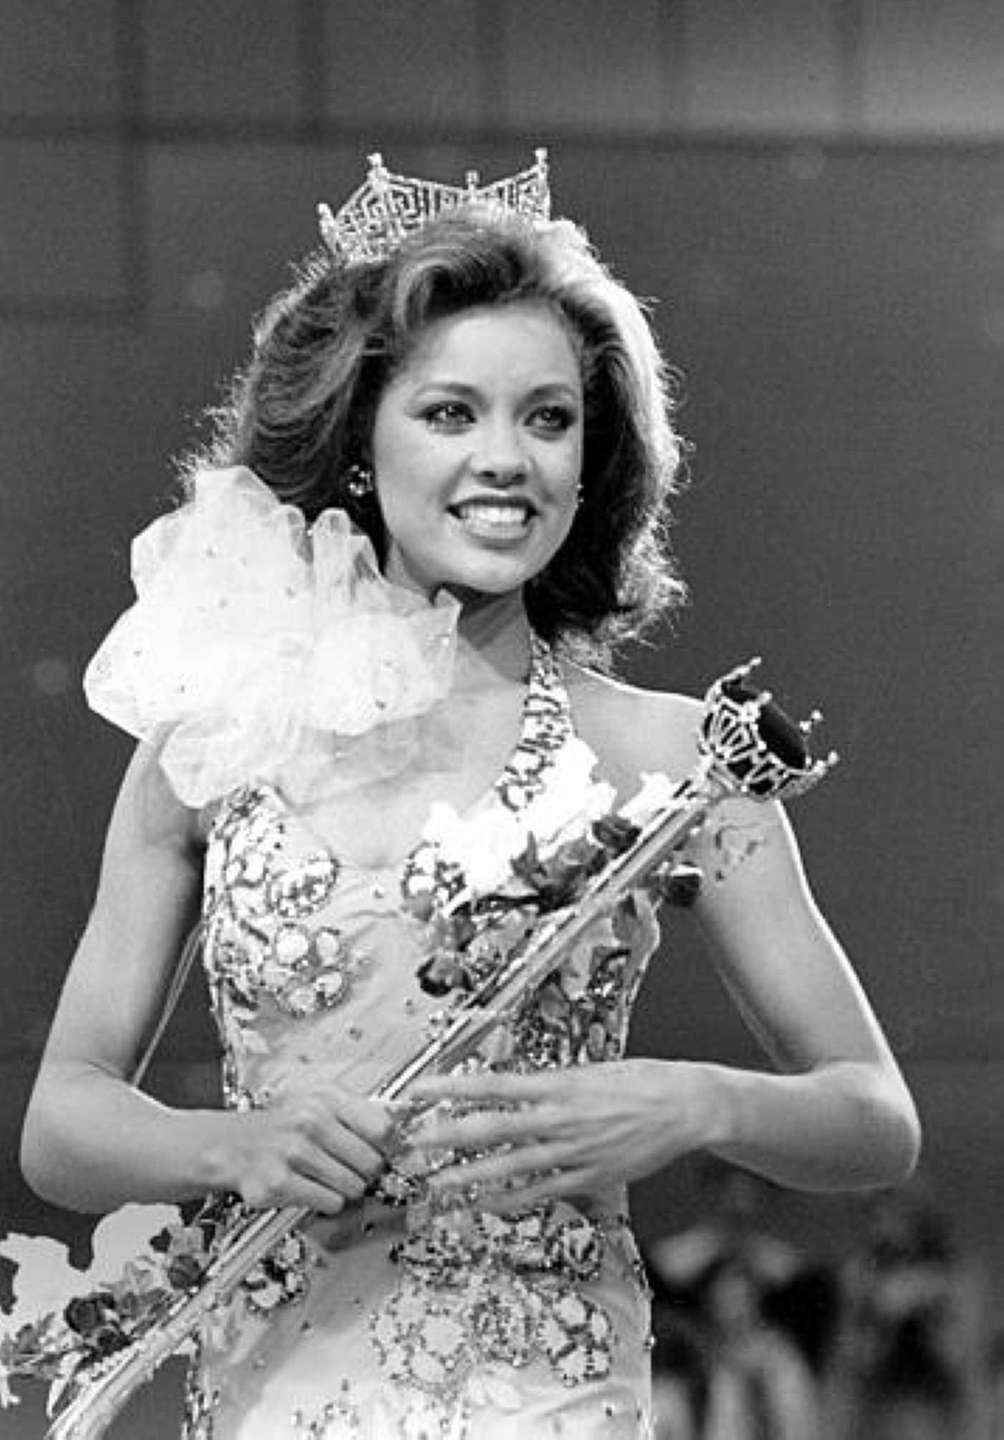 Vanessa Williams during her coronation walk after being